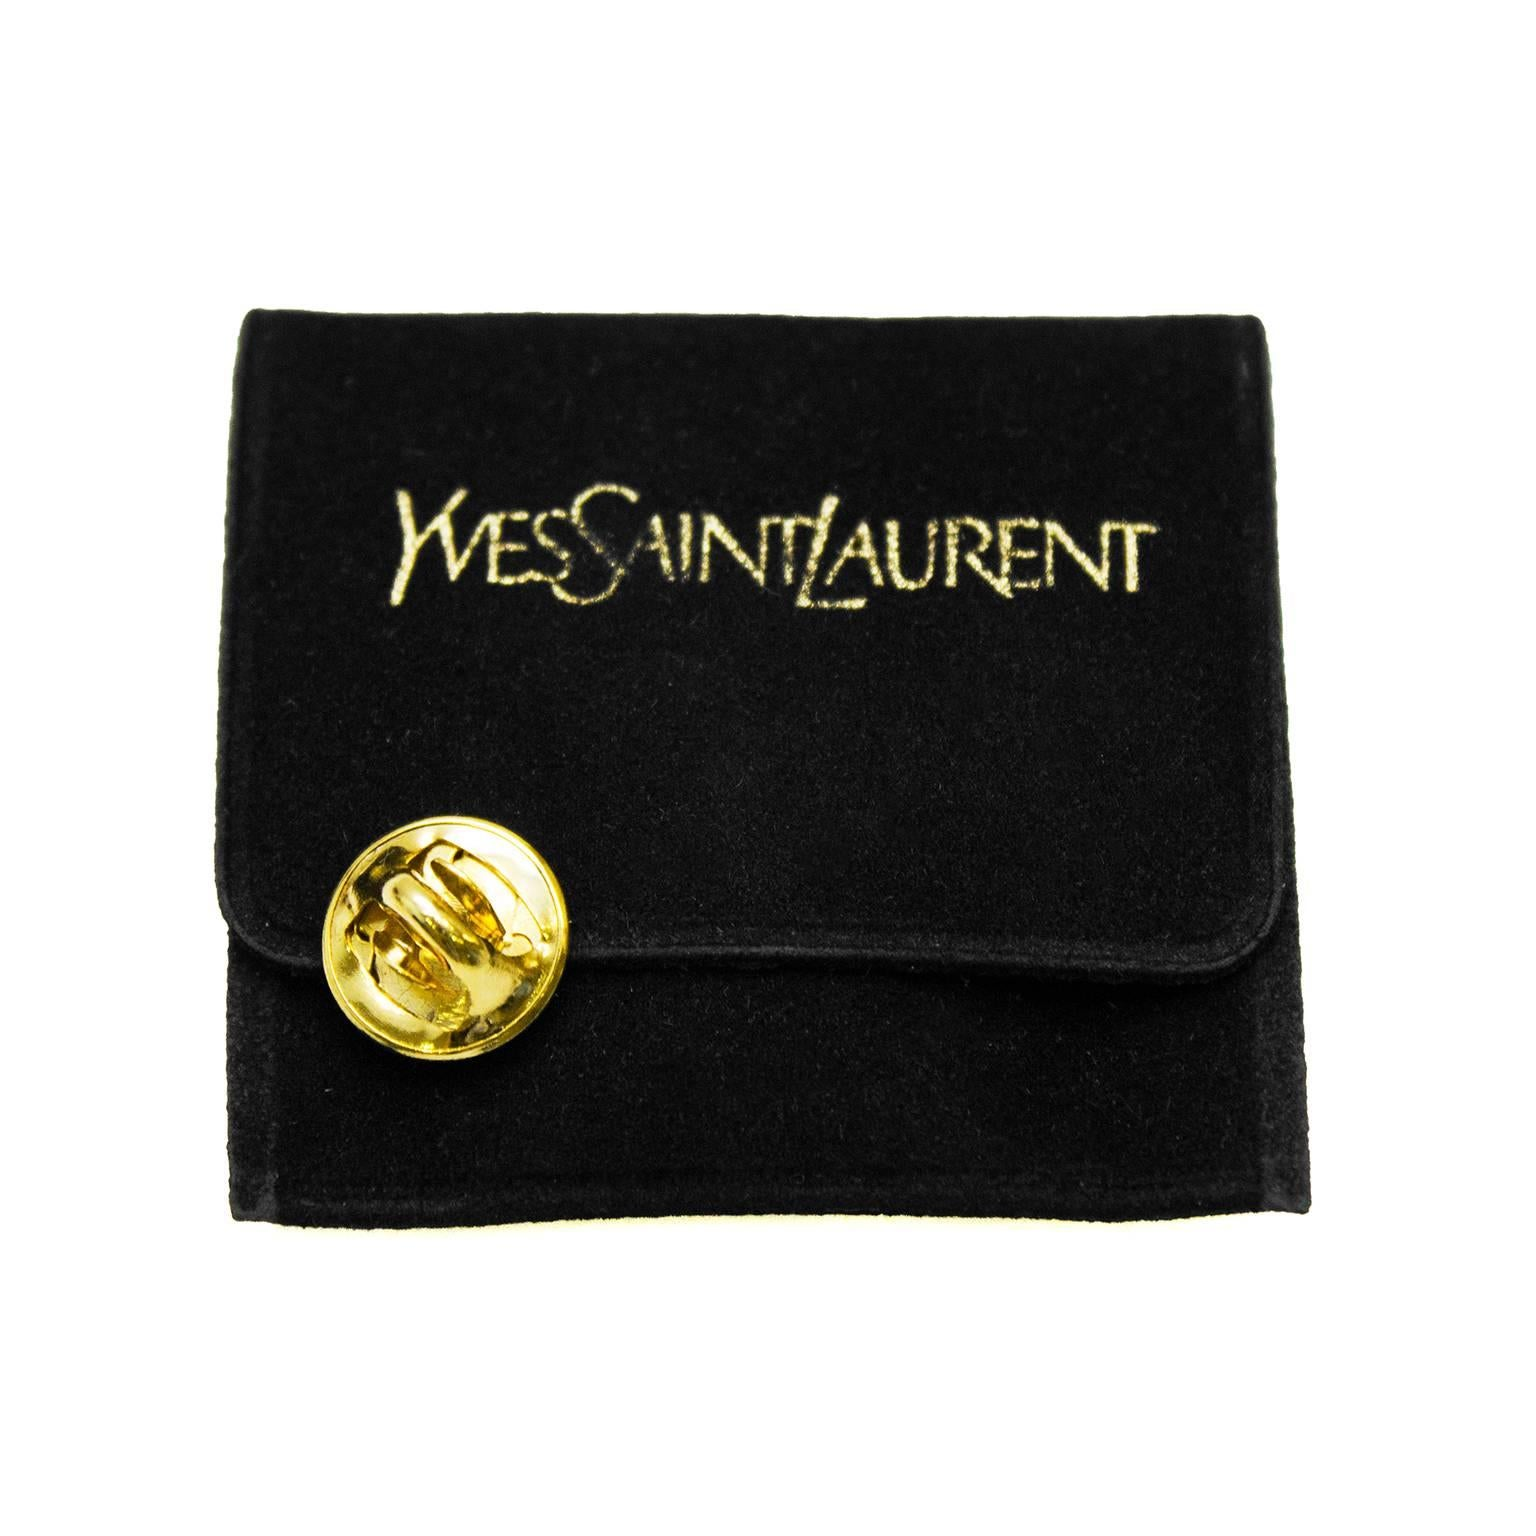 5e42a4784adeb Yves Saint Laurent YSL Gold Tone Logo Pin For Sale at 1stdibs